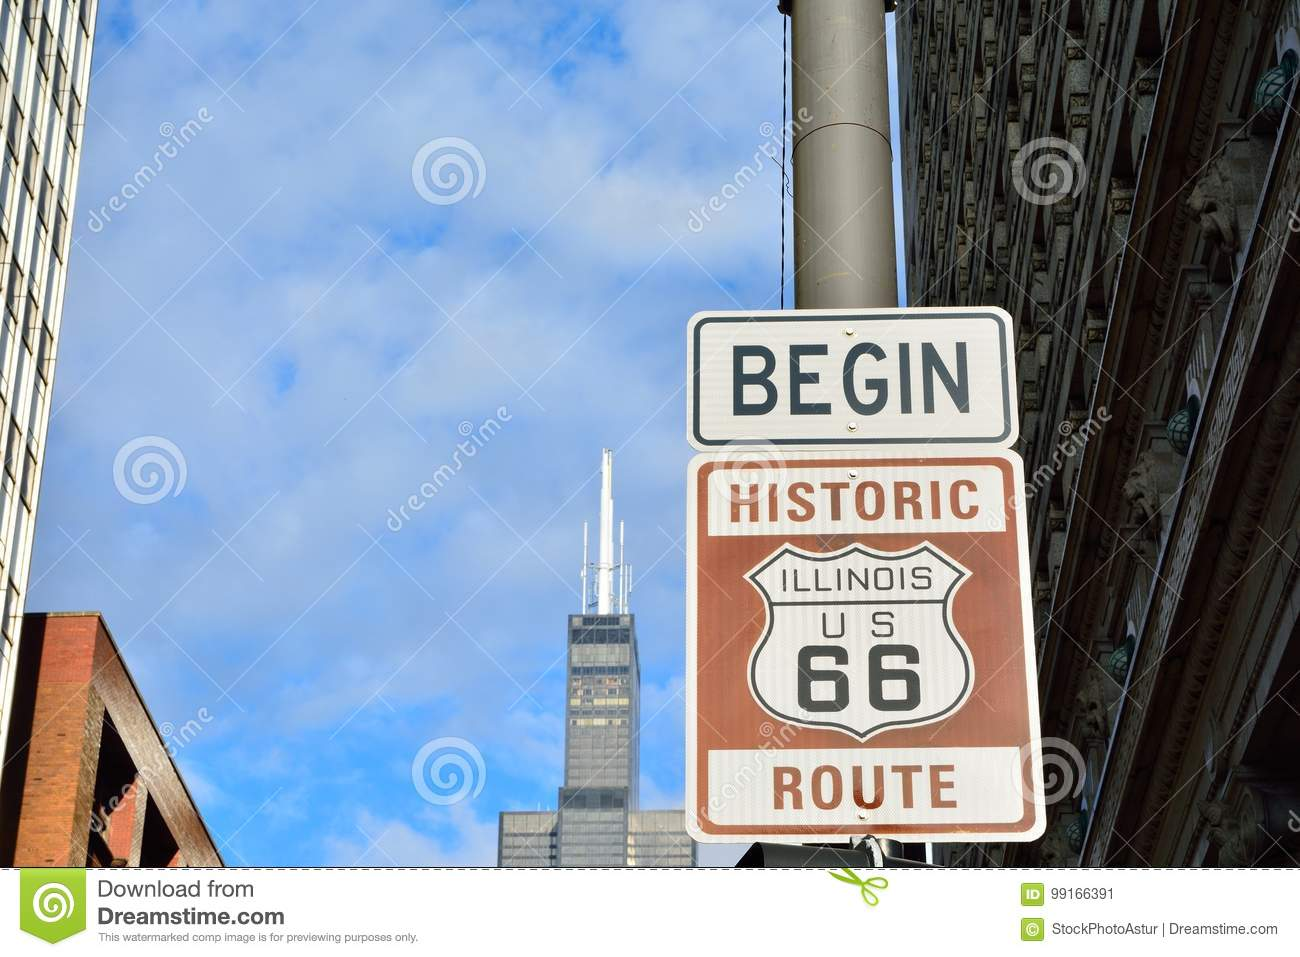 route 66 sign, the beginning of historic route 66. stock image